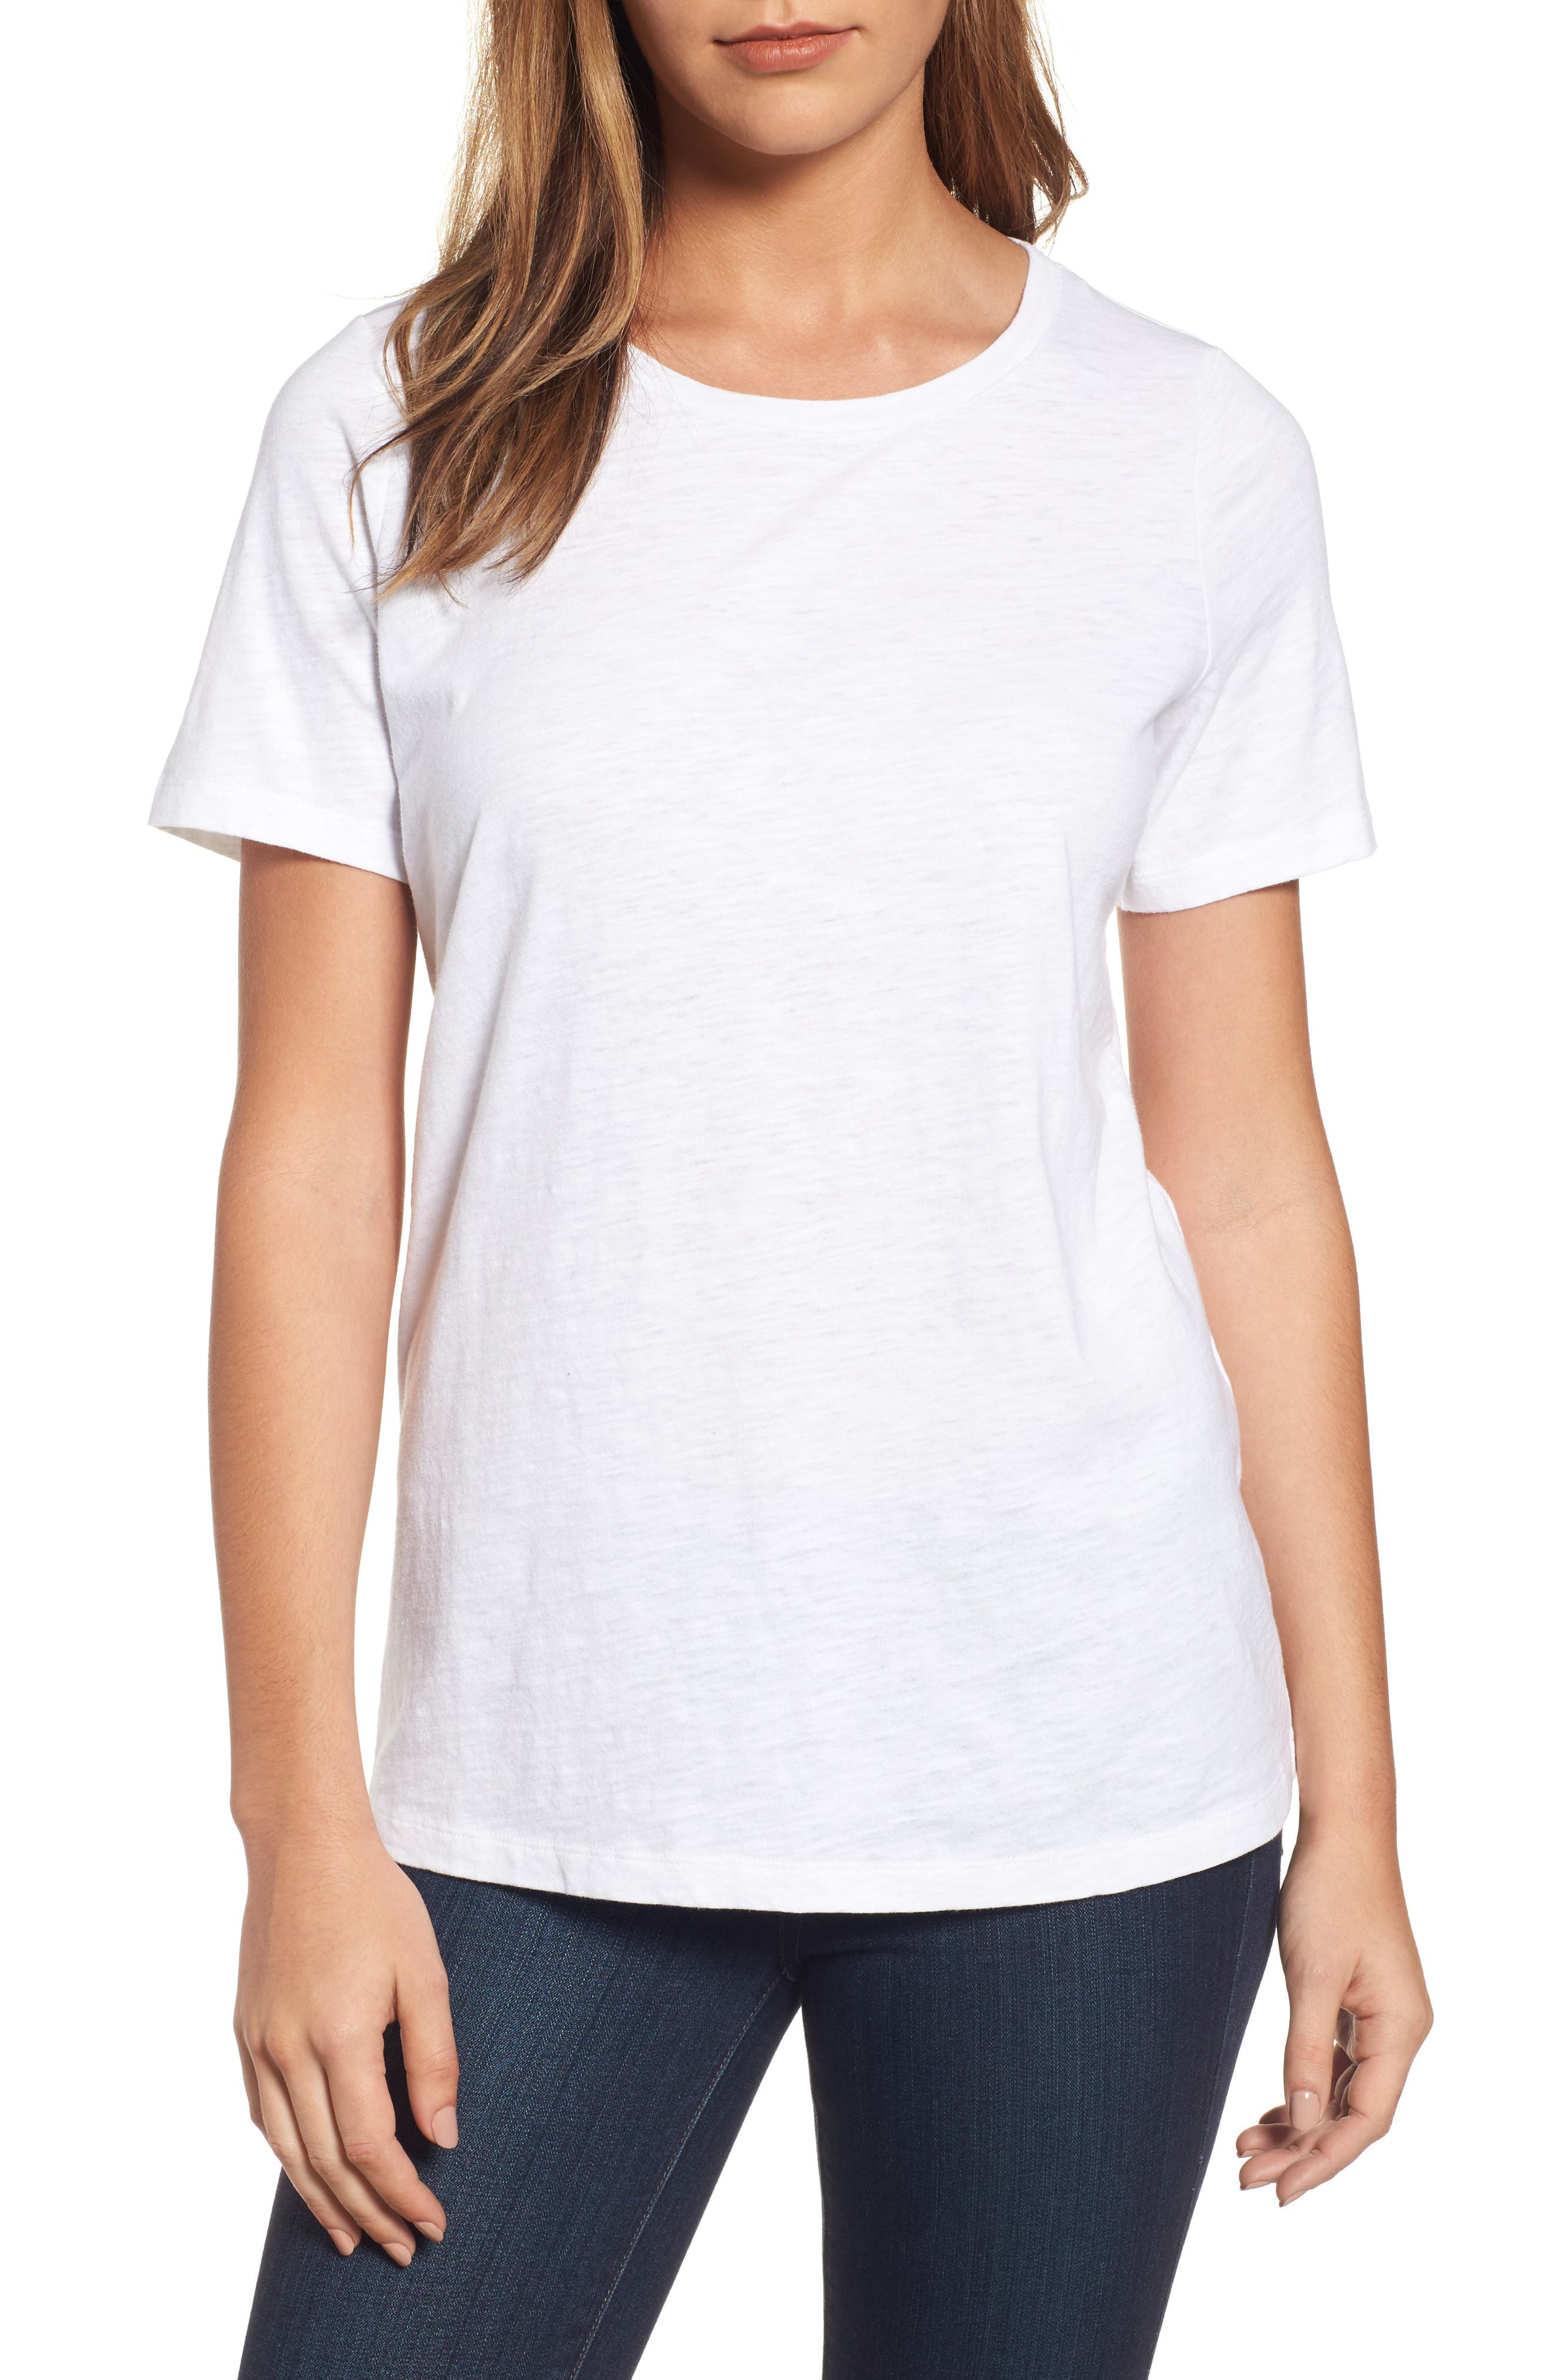 Organic Cotton Tee,                         Main,                         color, 100